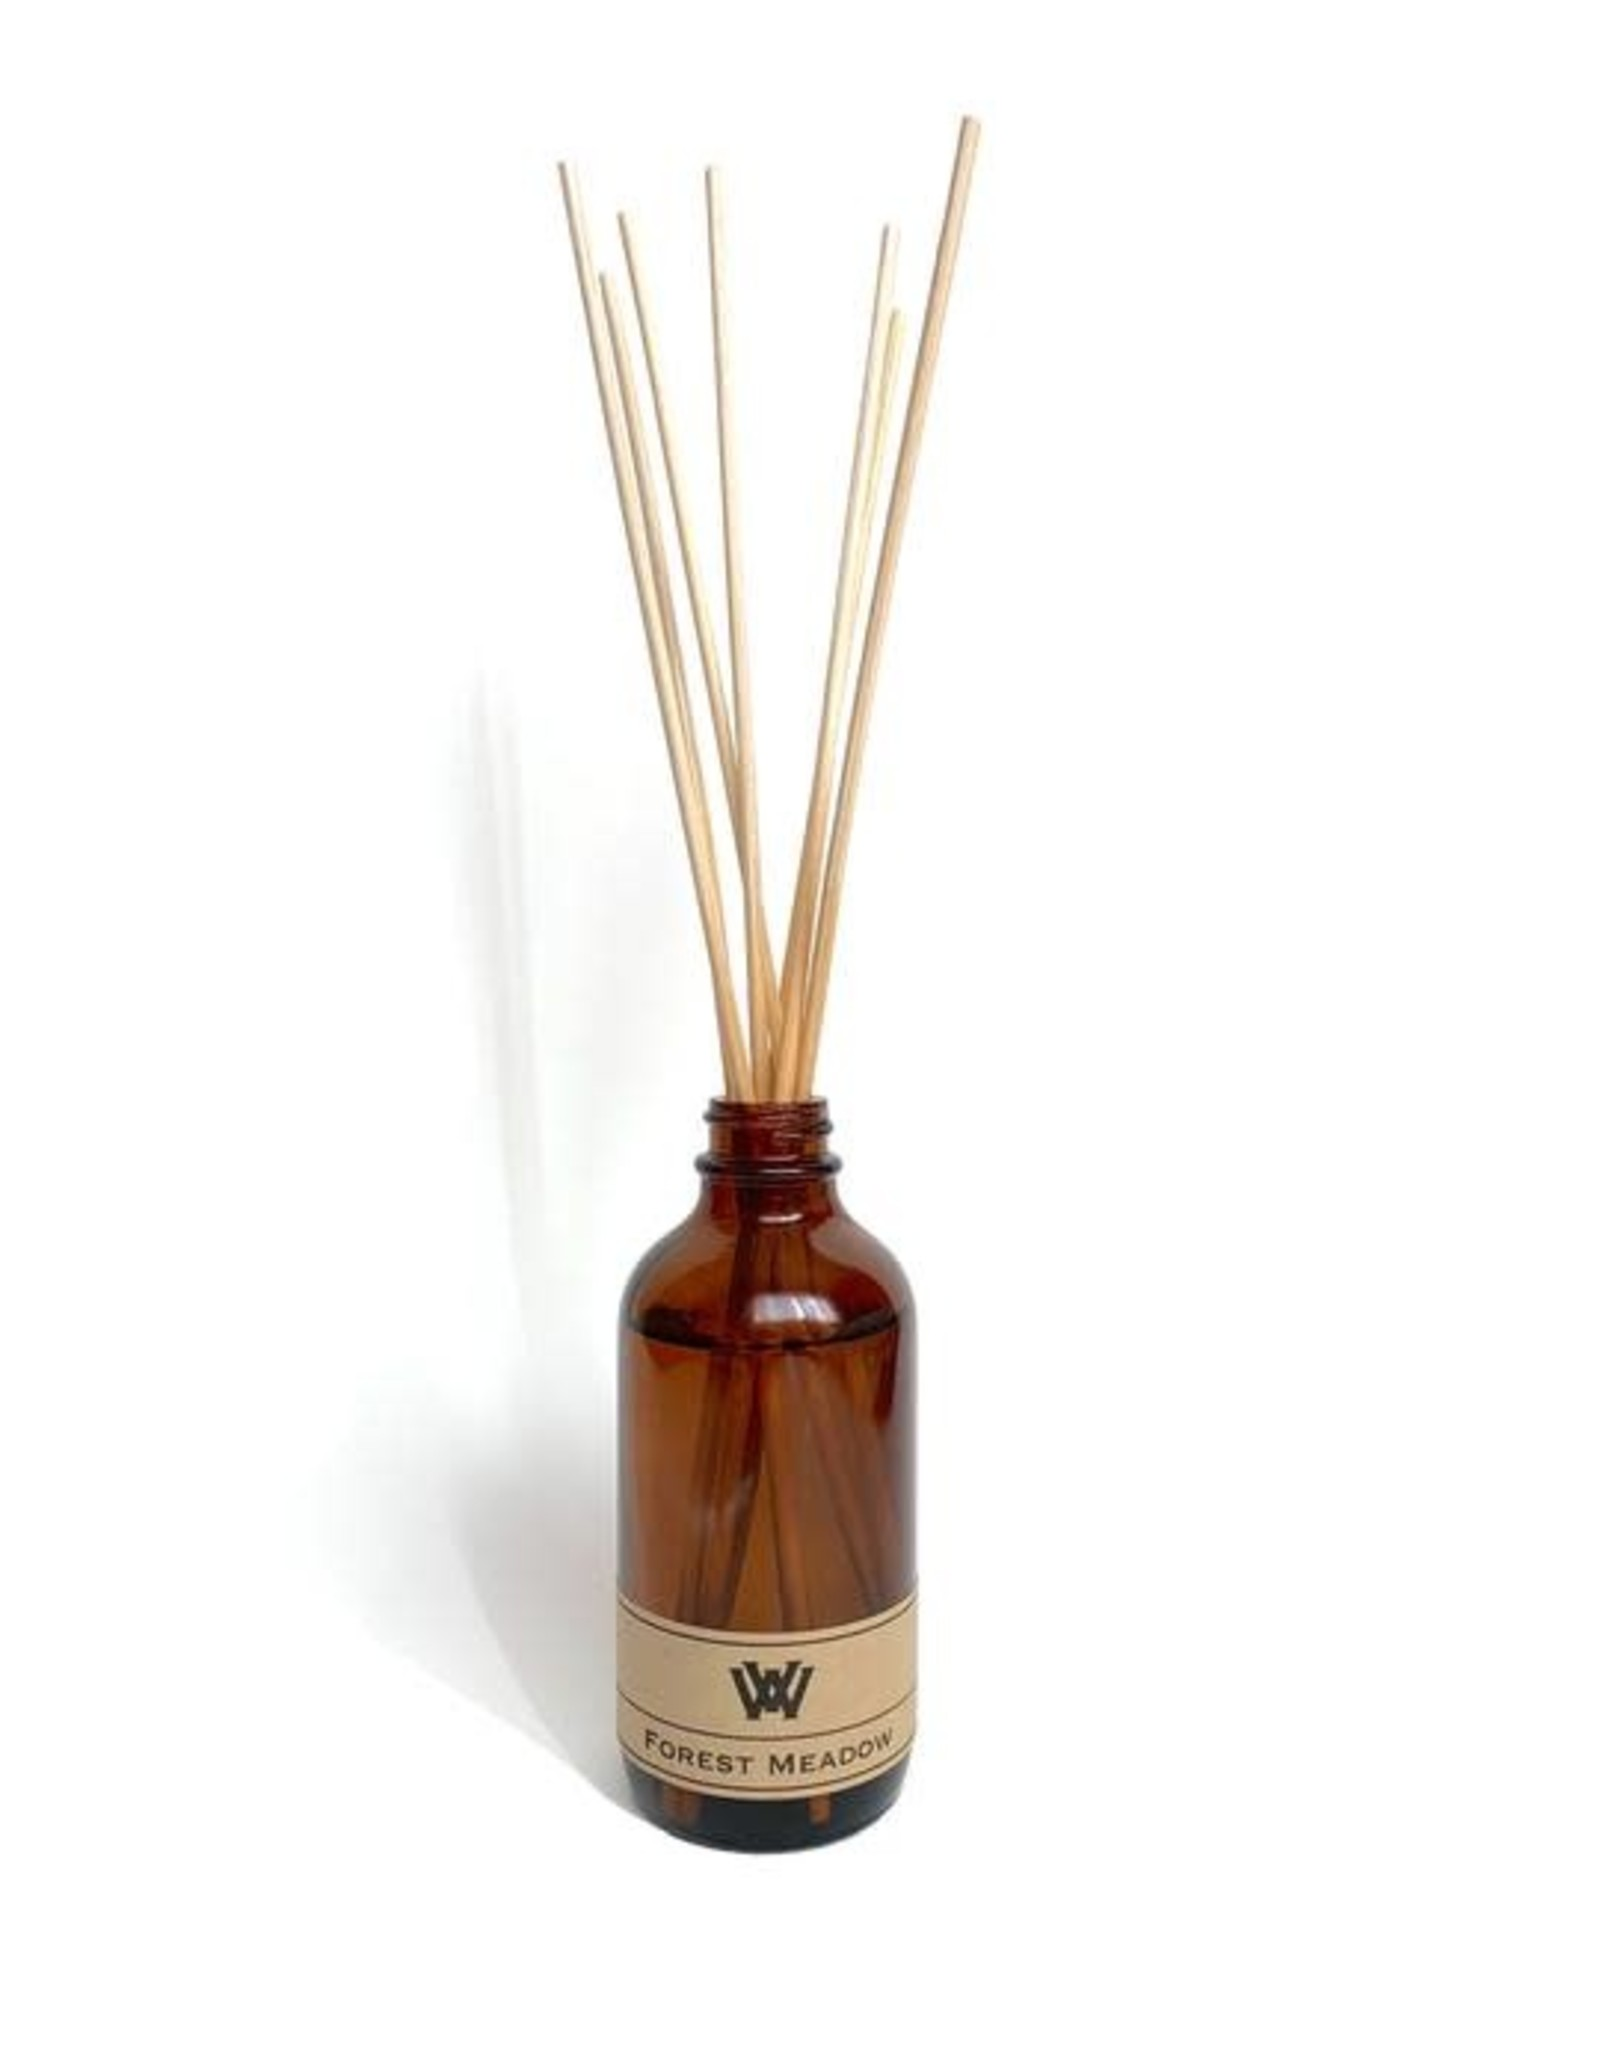 W.V Candle Co W.V Candle Co. Diffuser Forest Meadow